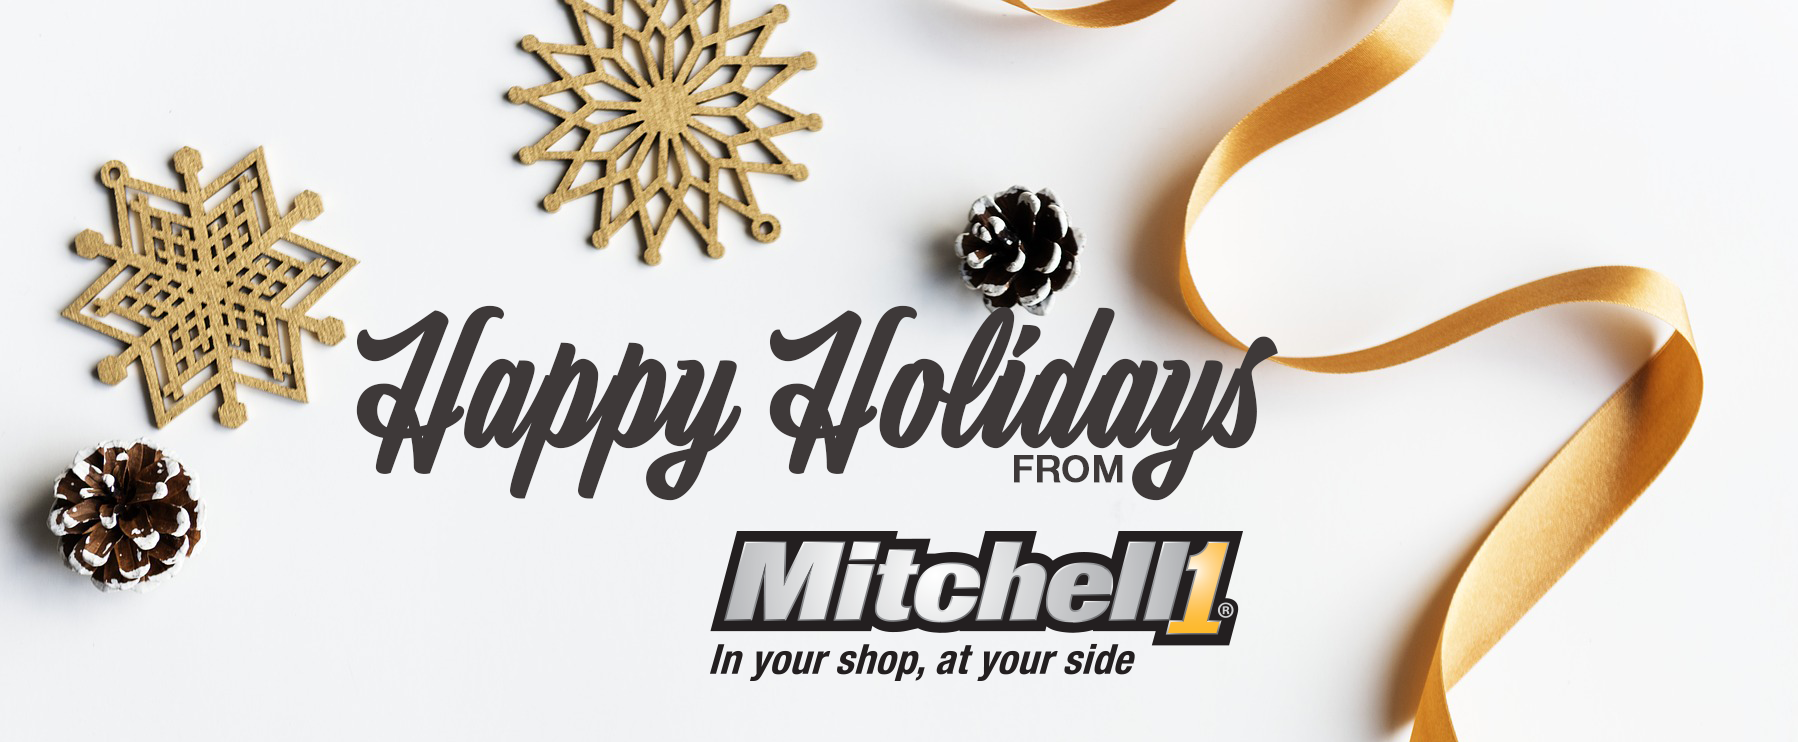 Mitchell 1 2017-2018 Holiday Hours for Support Teams